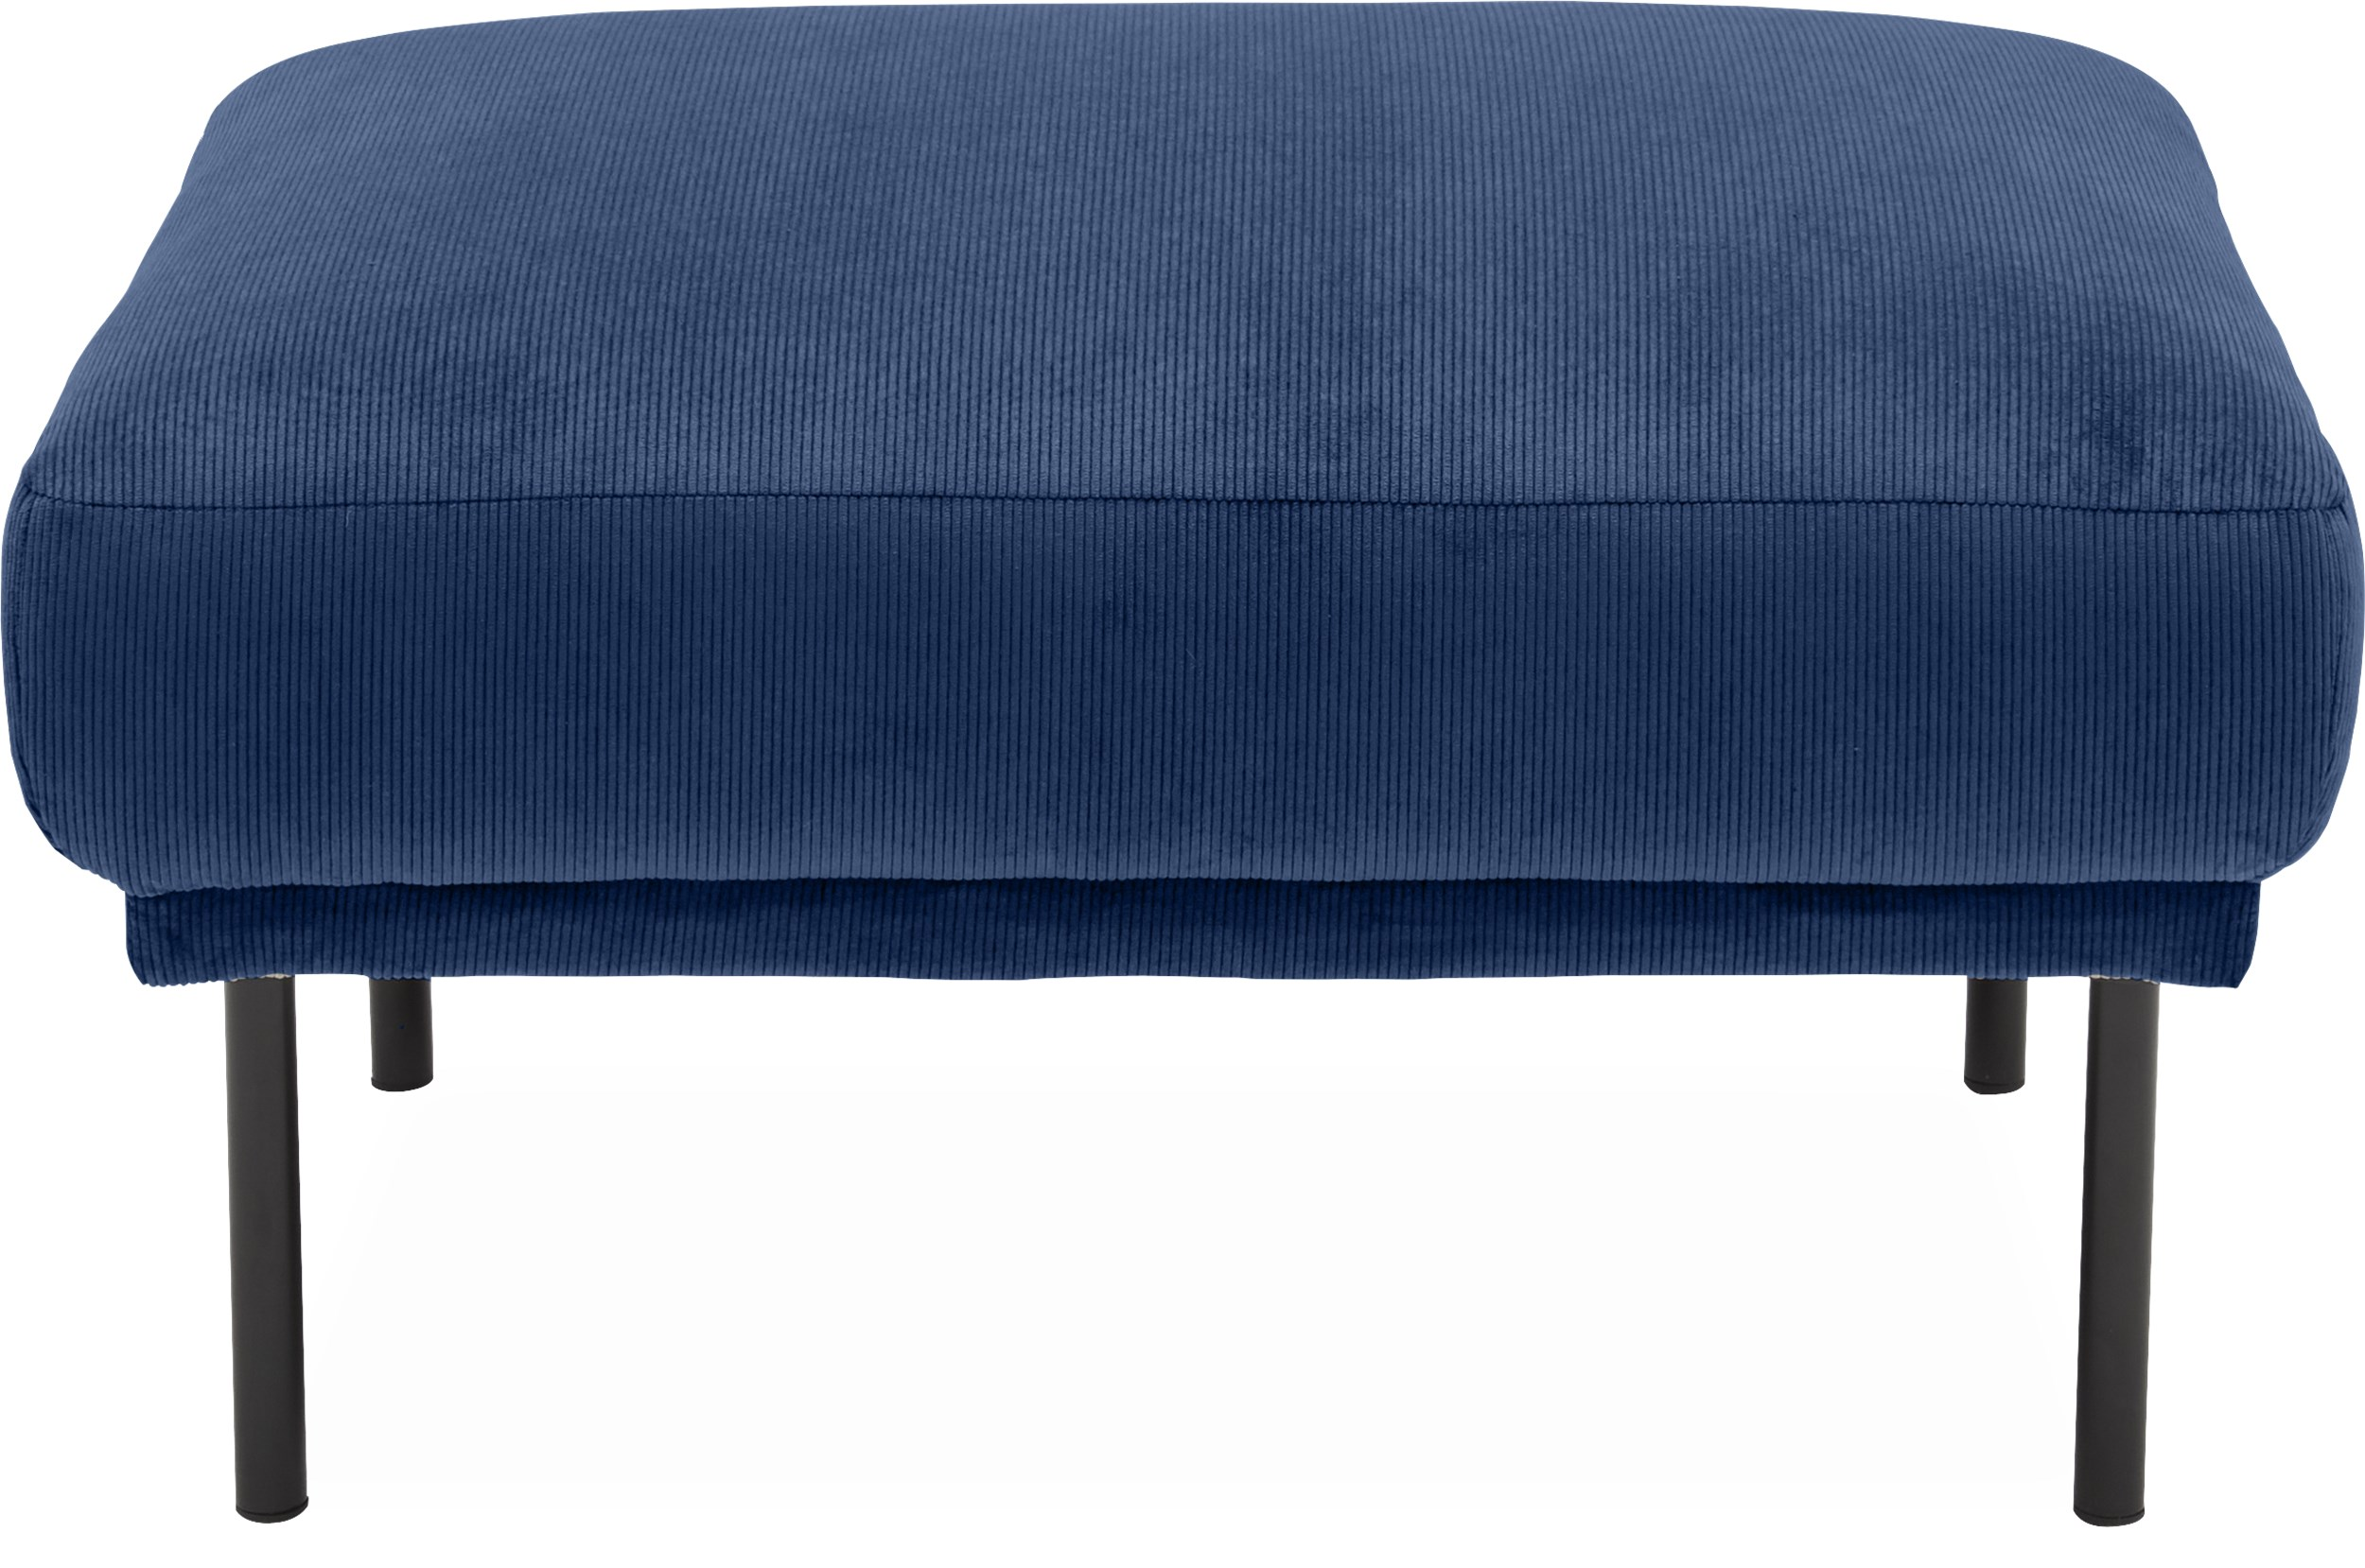 Larvik Sofa puf - Wave 220 Royal blue stof og ben i sortlakeret metal